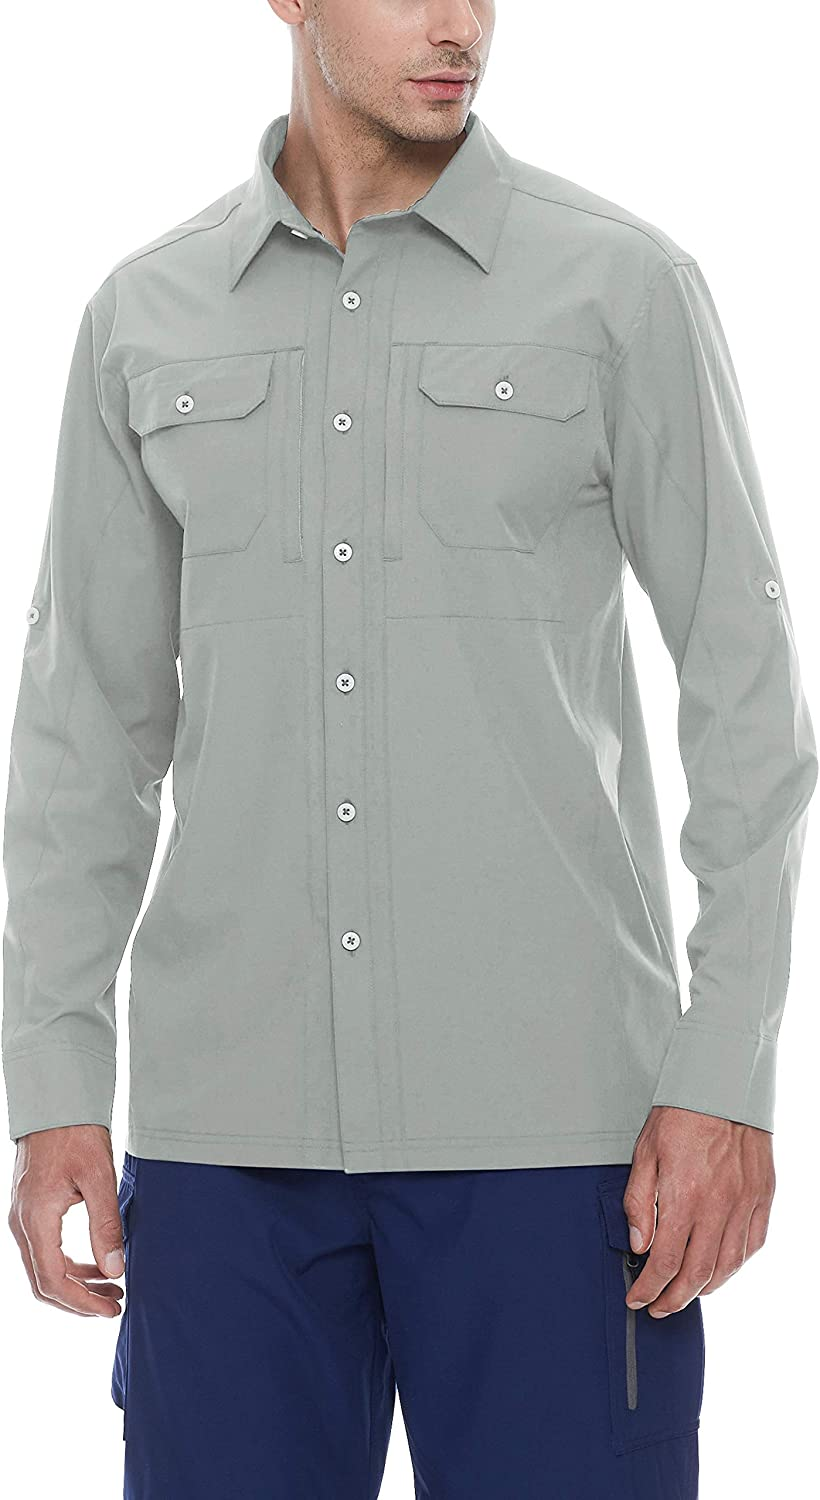 Camping Long Sleeve Shirt for Hiking Little Donkey Andy Mens Stretch Quick Dry UPF50 Travel